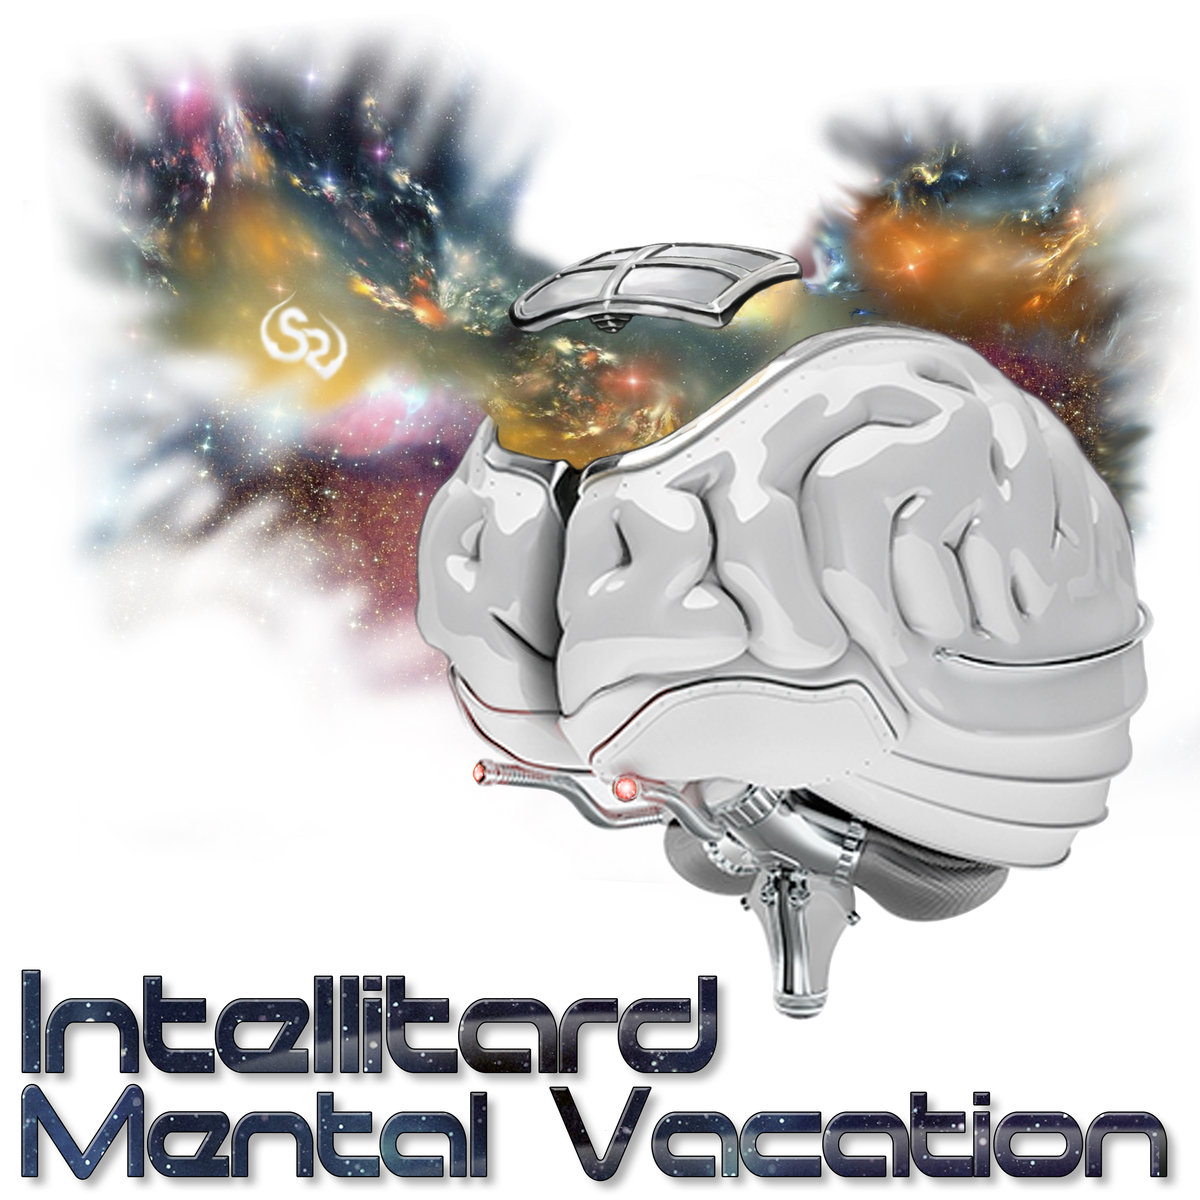 Intellitard - Suadade @ 'Mental Vacation' album (808, bass)